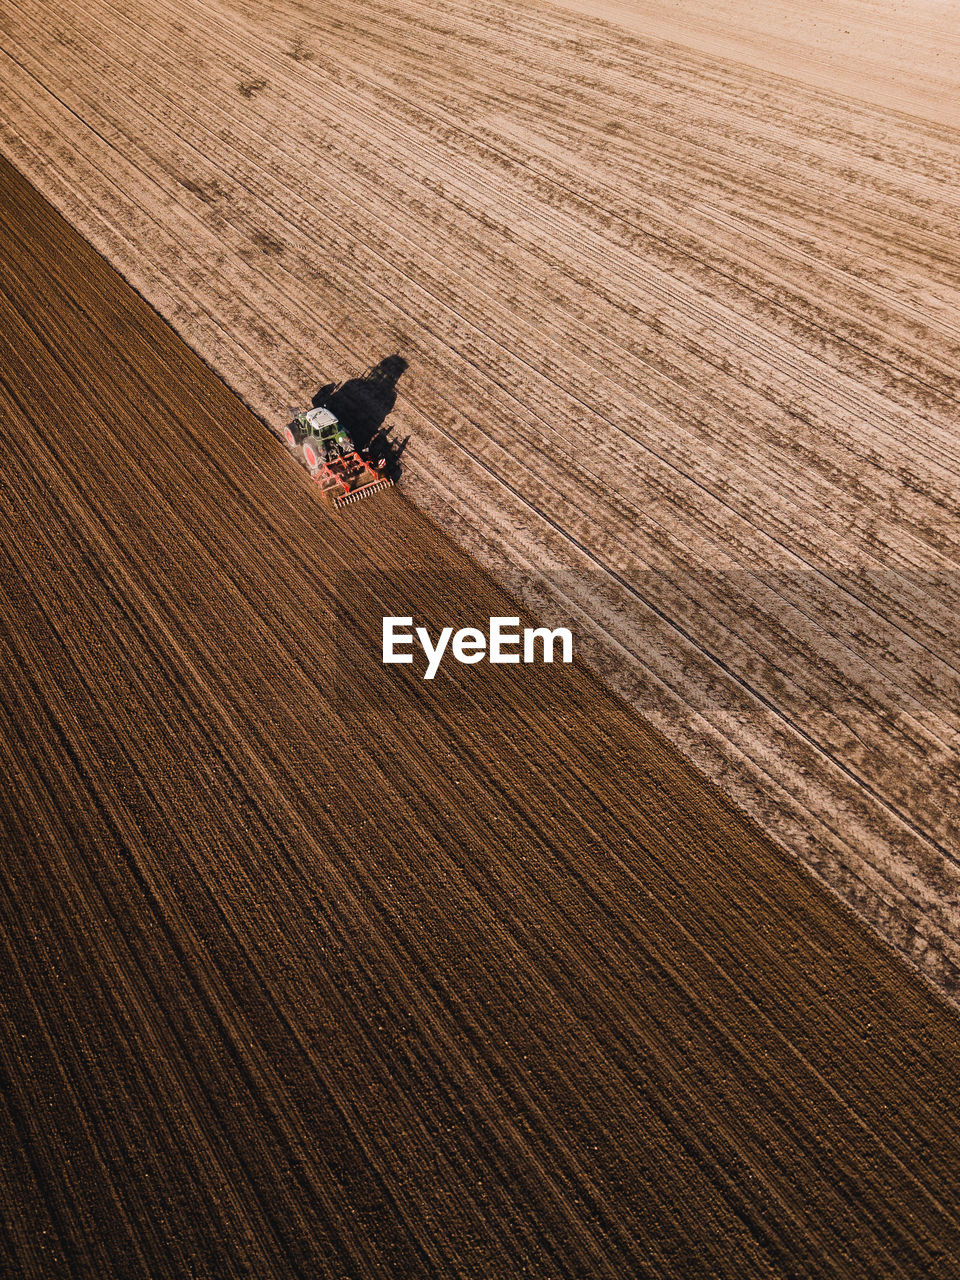 high angle view, land, working, occupation, agriculture, farm, harvesting, landscape, agricultural machinery, one person, rural scene, nature, field, day, environment, agricultural equipment, growth, aerial view, tractor, farmer